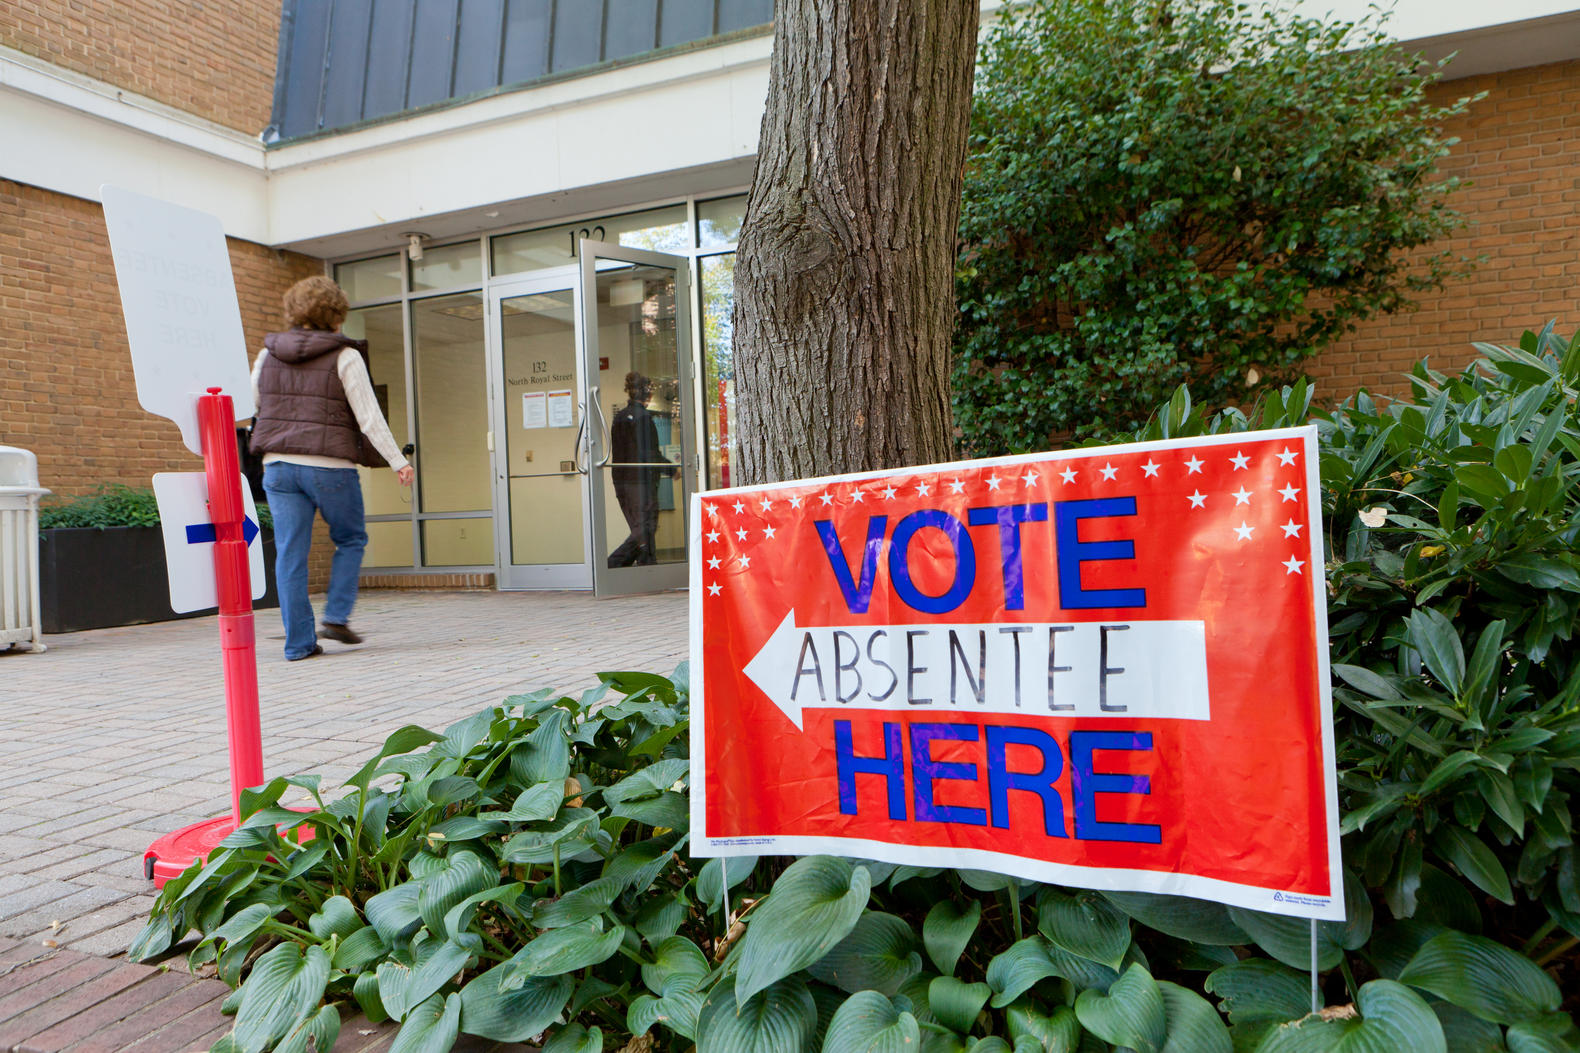 The deadline to register to vote in Virginia's 2019 General Election is Tuesday, October 15. There are several local races up for election on November 5.